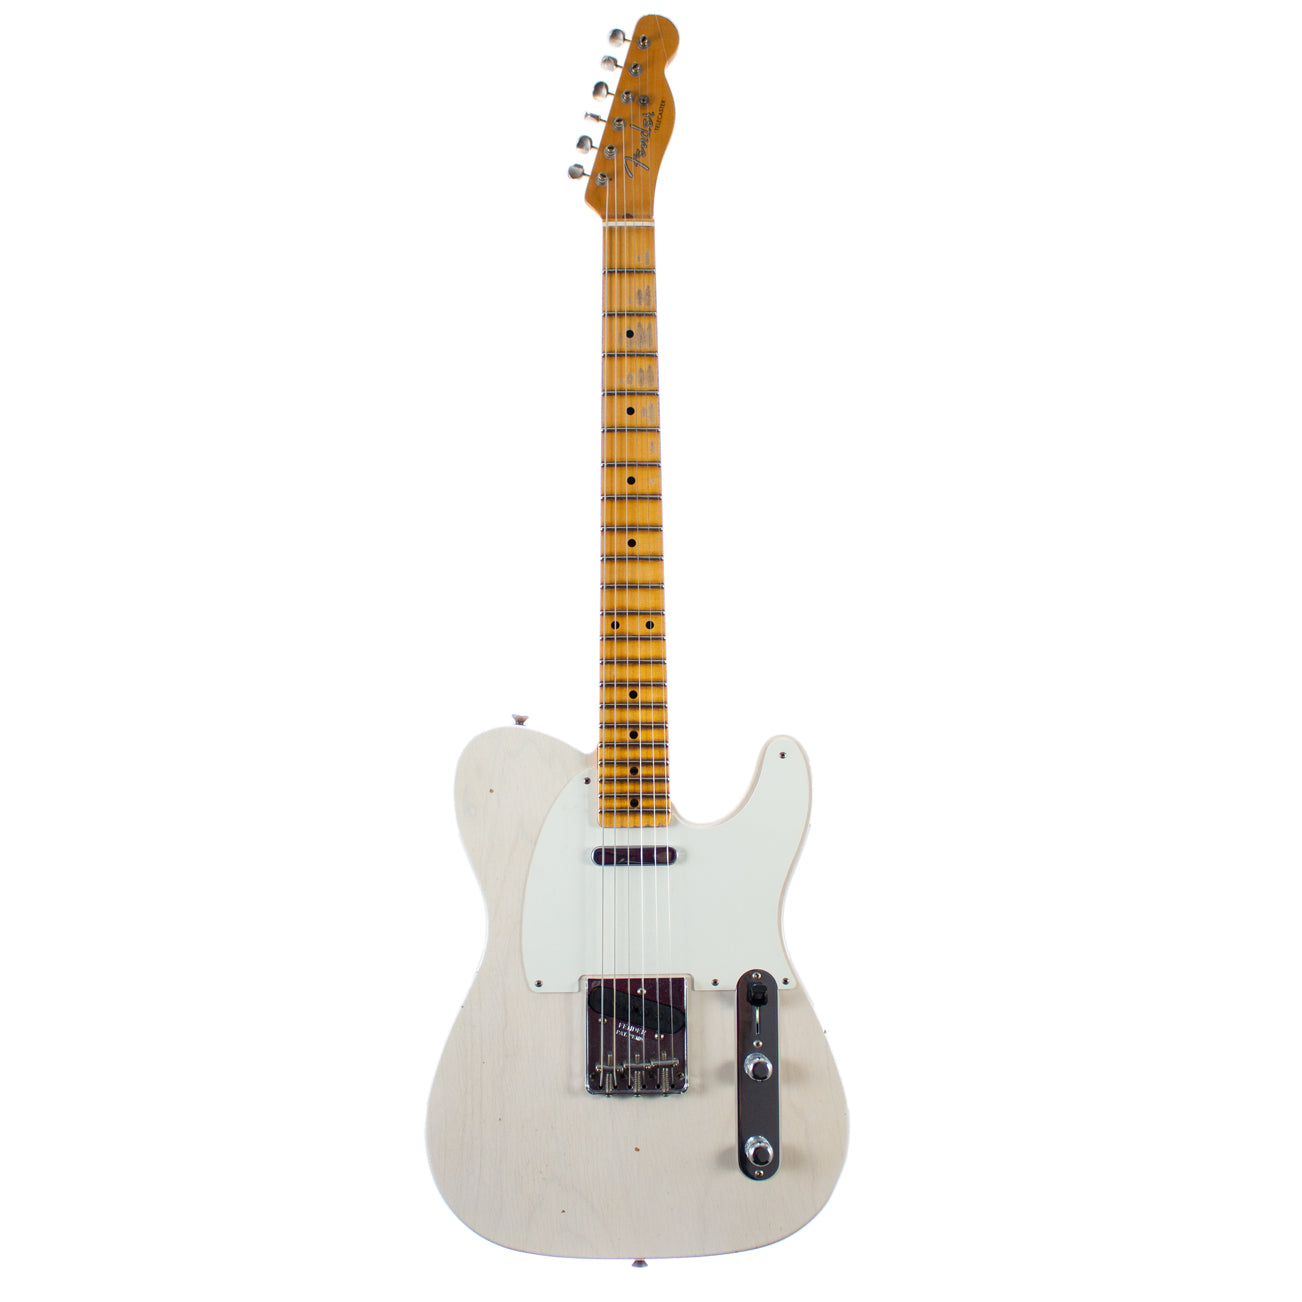 Fender Custom Shop '55 Journeyman Relic Tele Aged White Blonde